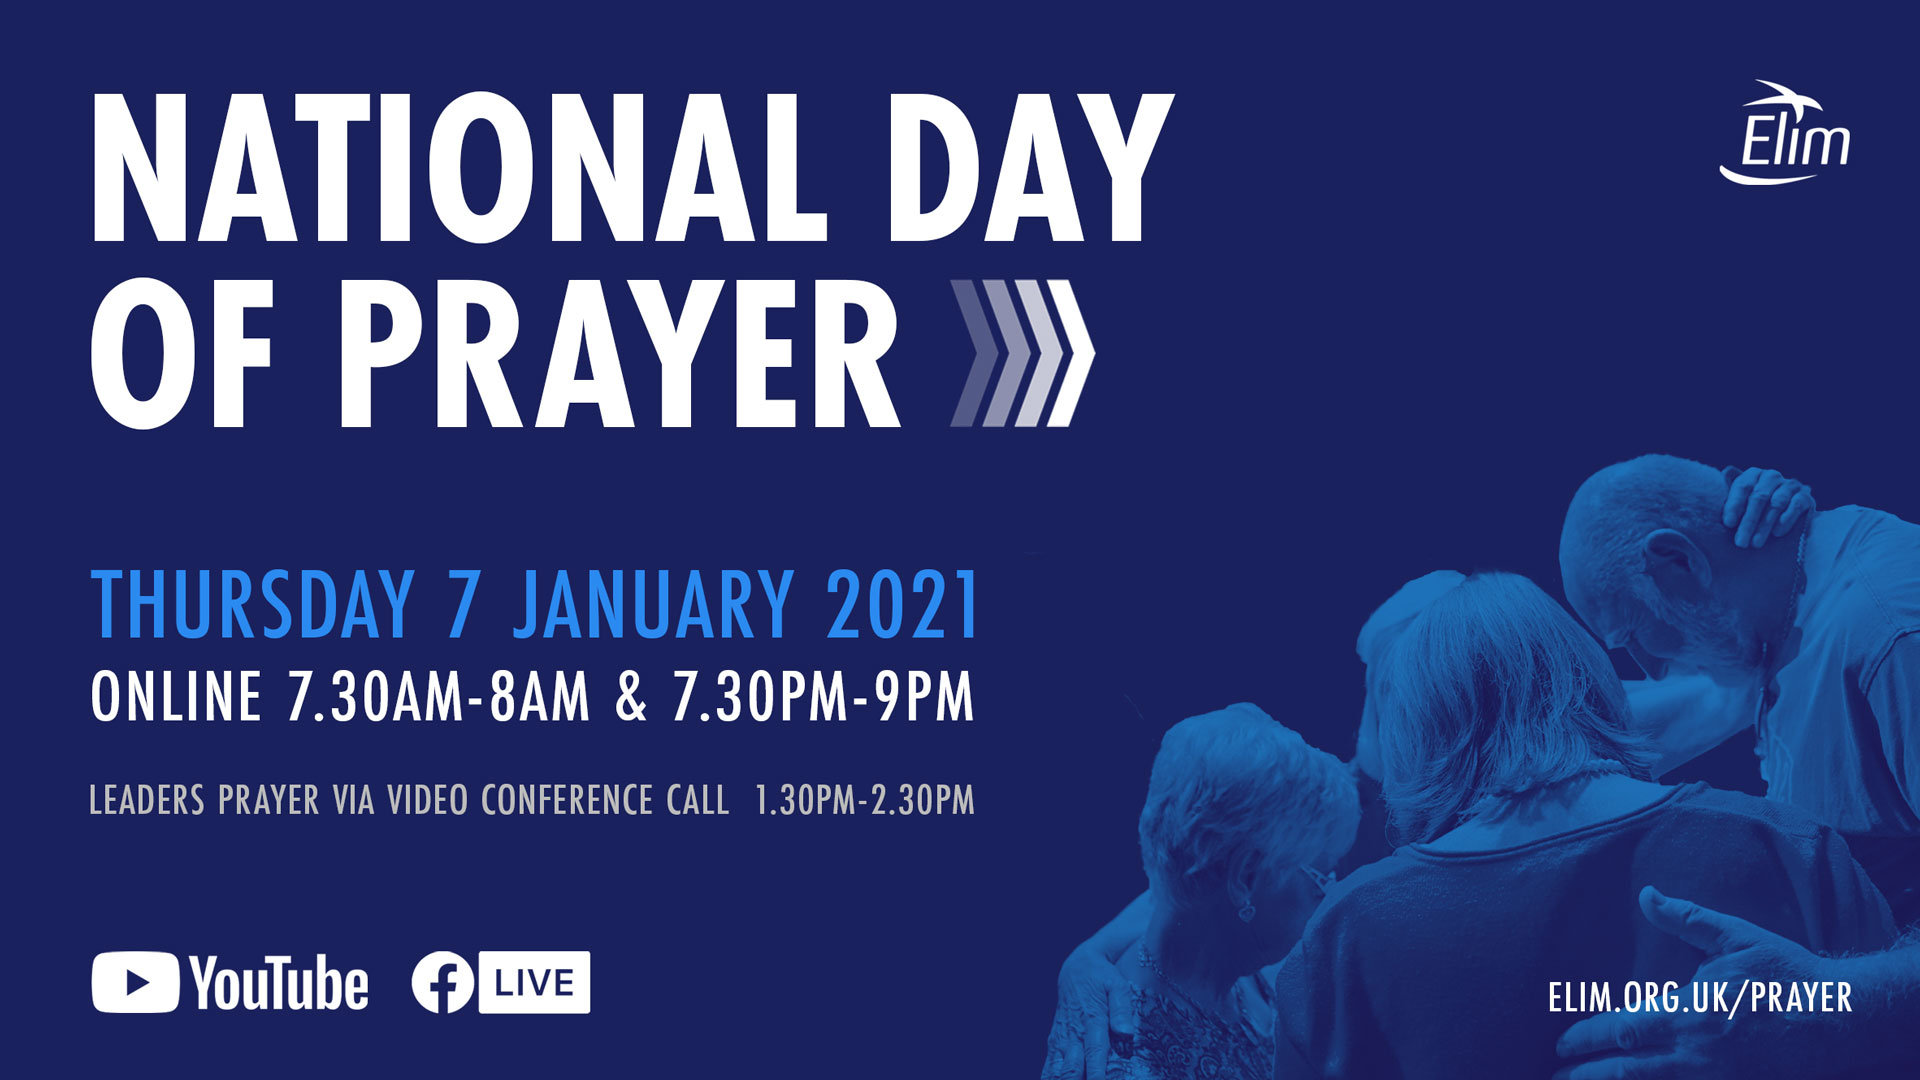 NationalDayofPrayer 7Jan2021z